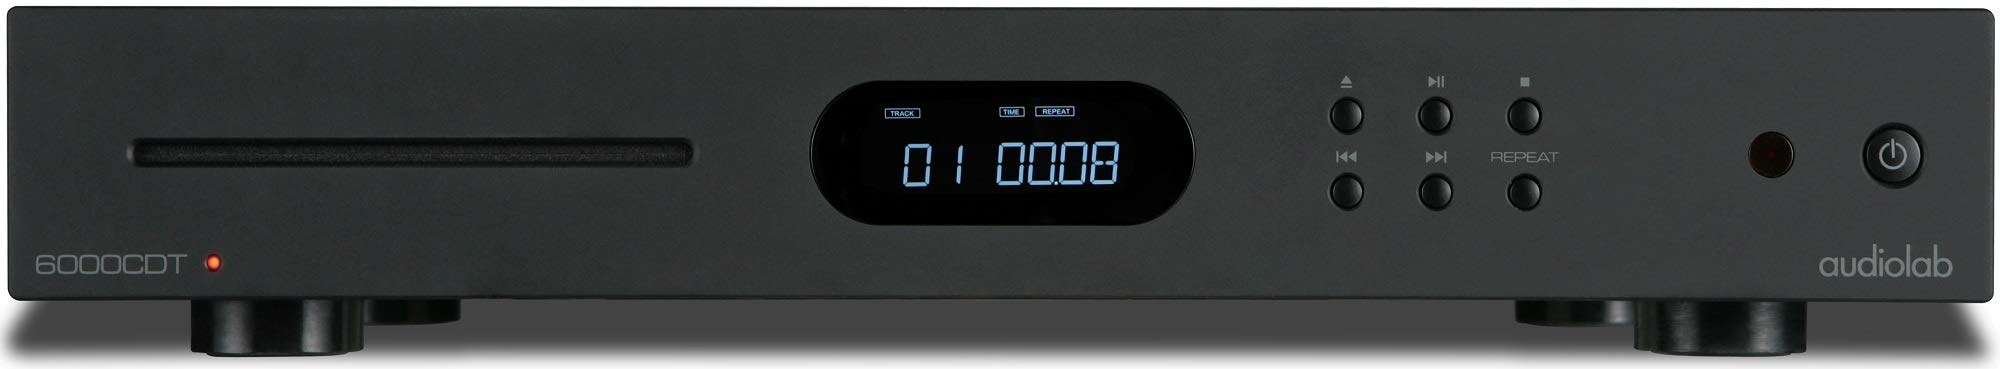 Audiolab 6000CDT Dedicated CD Transport with Remote - Black